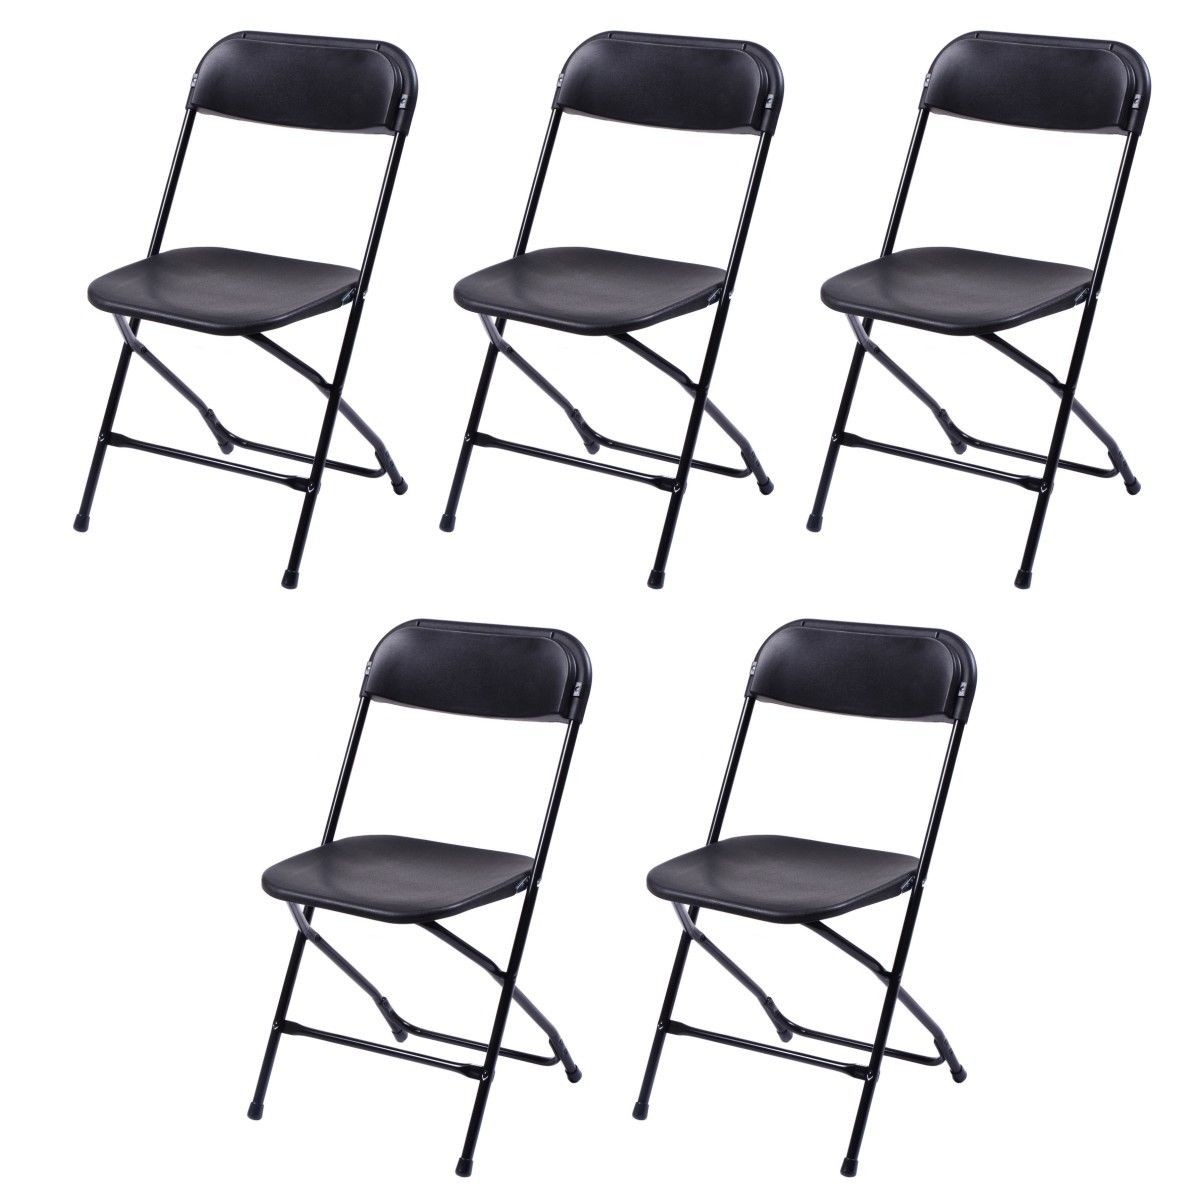 commercial folding chairs metal and wood canada 5pcs set plastic heavy duty steel frame